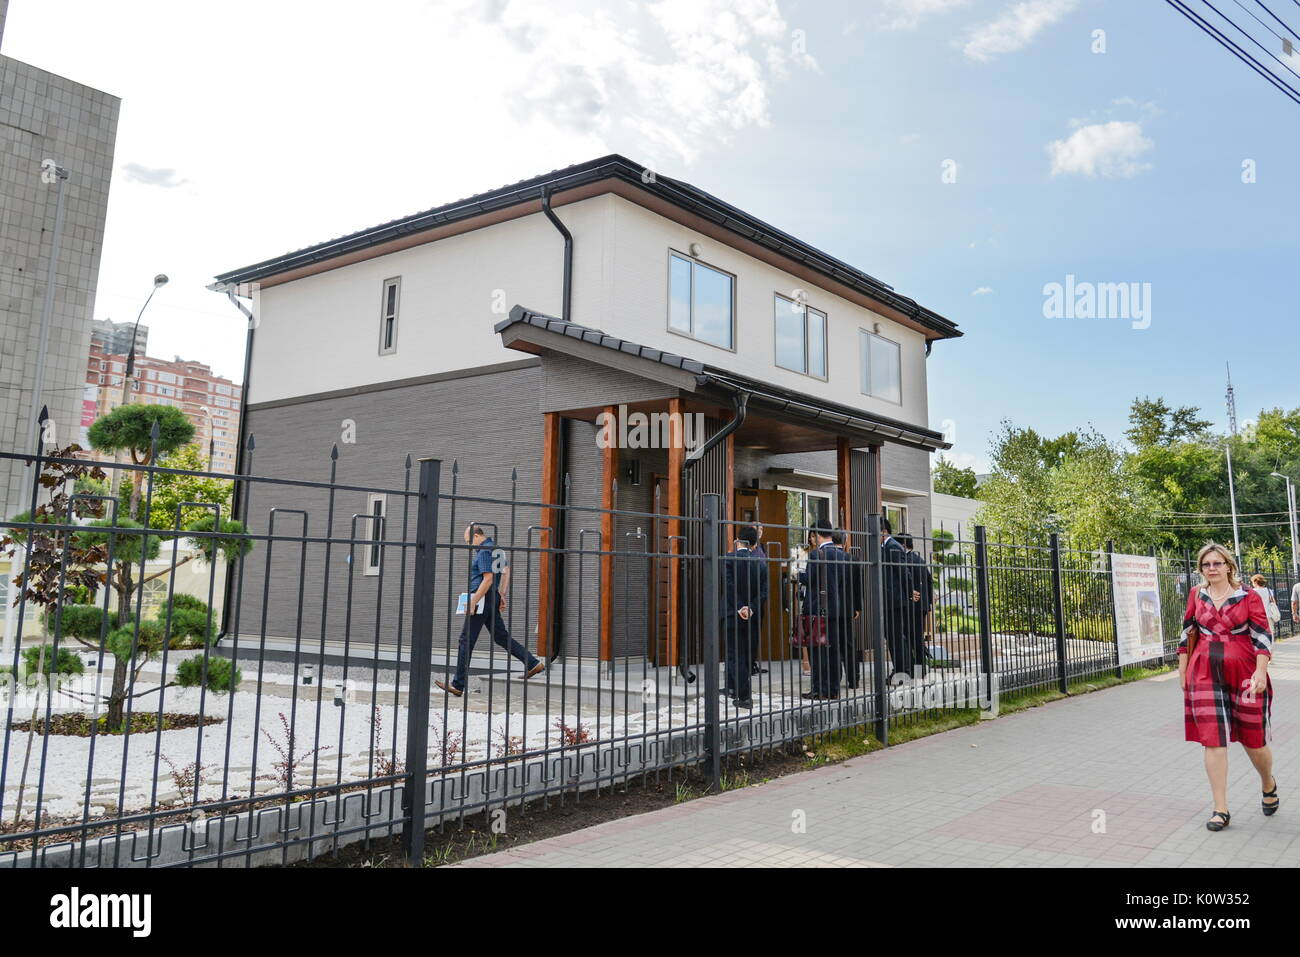 VORONEZH, RUSSIA - AUGUST 24, 2017: The first Russian-Japanese two-storey smart home made of wood and eco-friendly materials. The house is equipped with energy management system, air quality monitors and temperature sensors. Kristina Brazhnikova/TASS - Stock Image